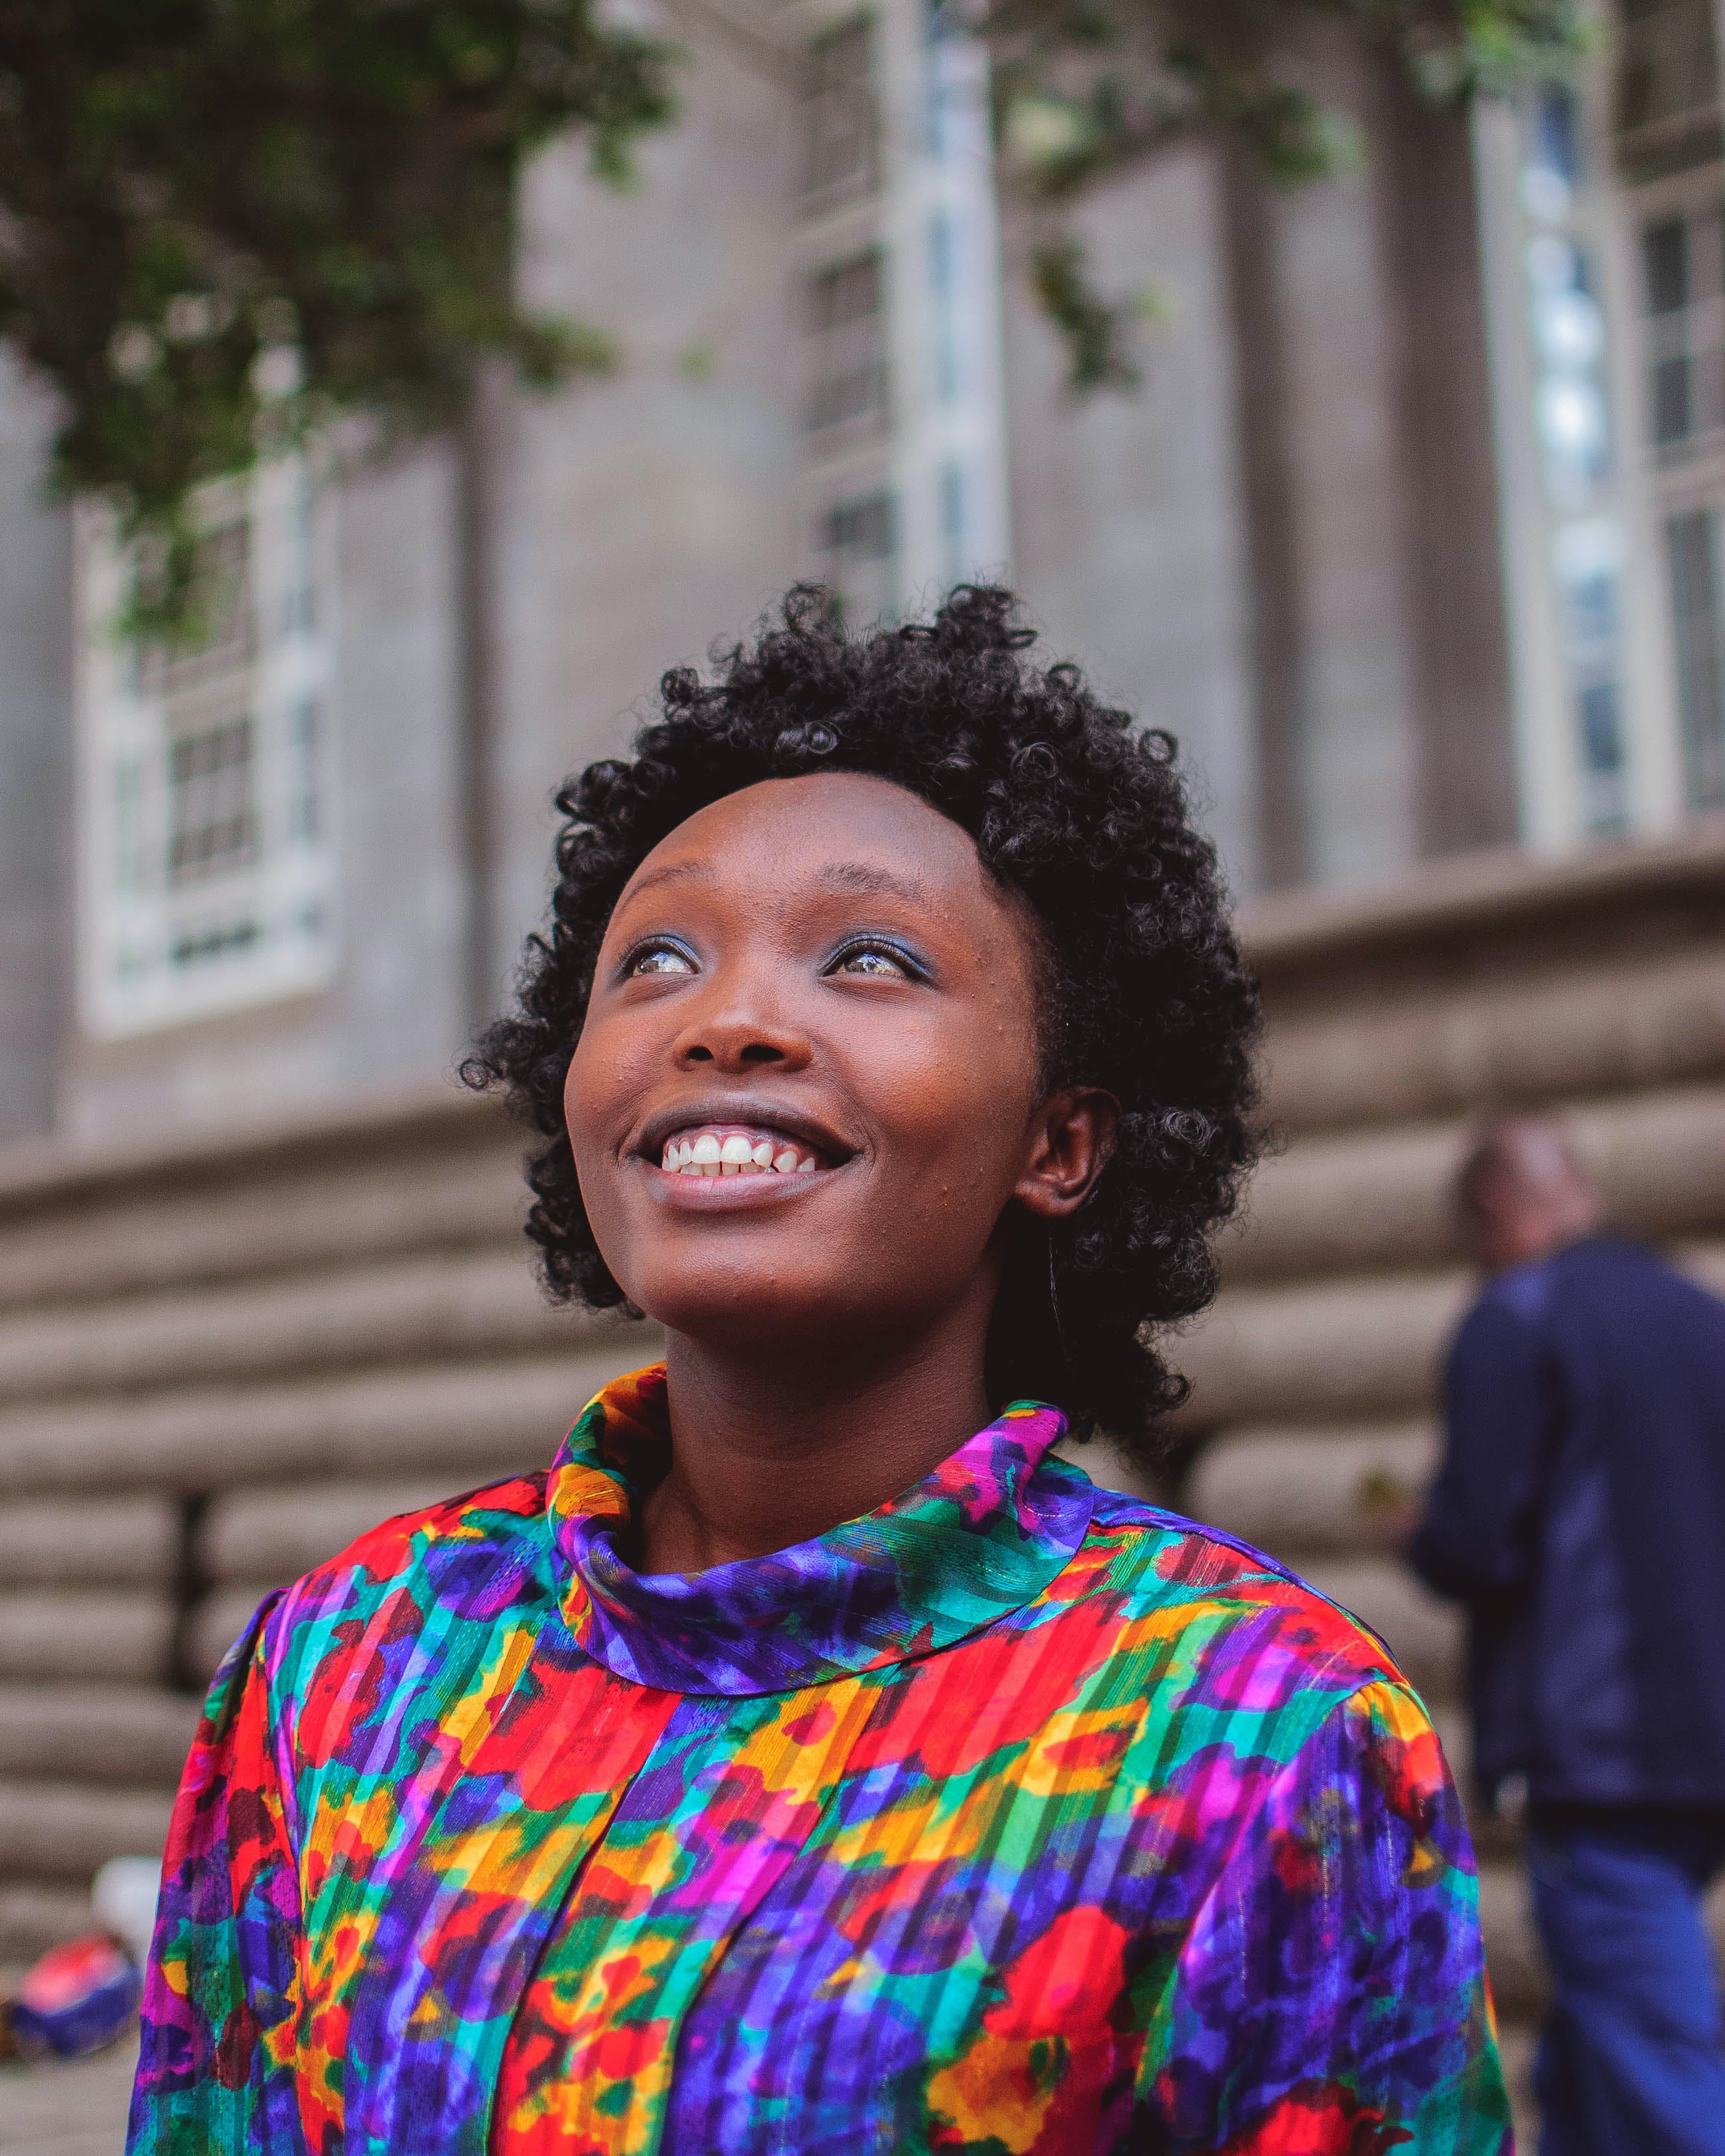 Woman Wearing Multicolored Top Smiling and Looking Up